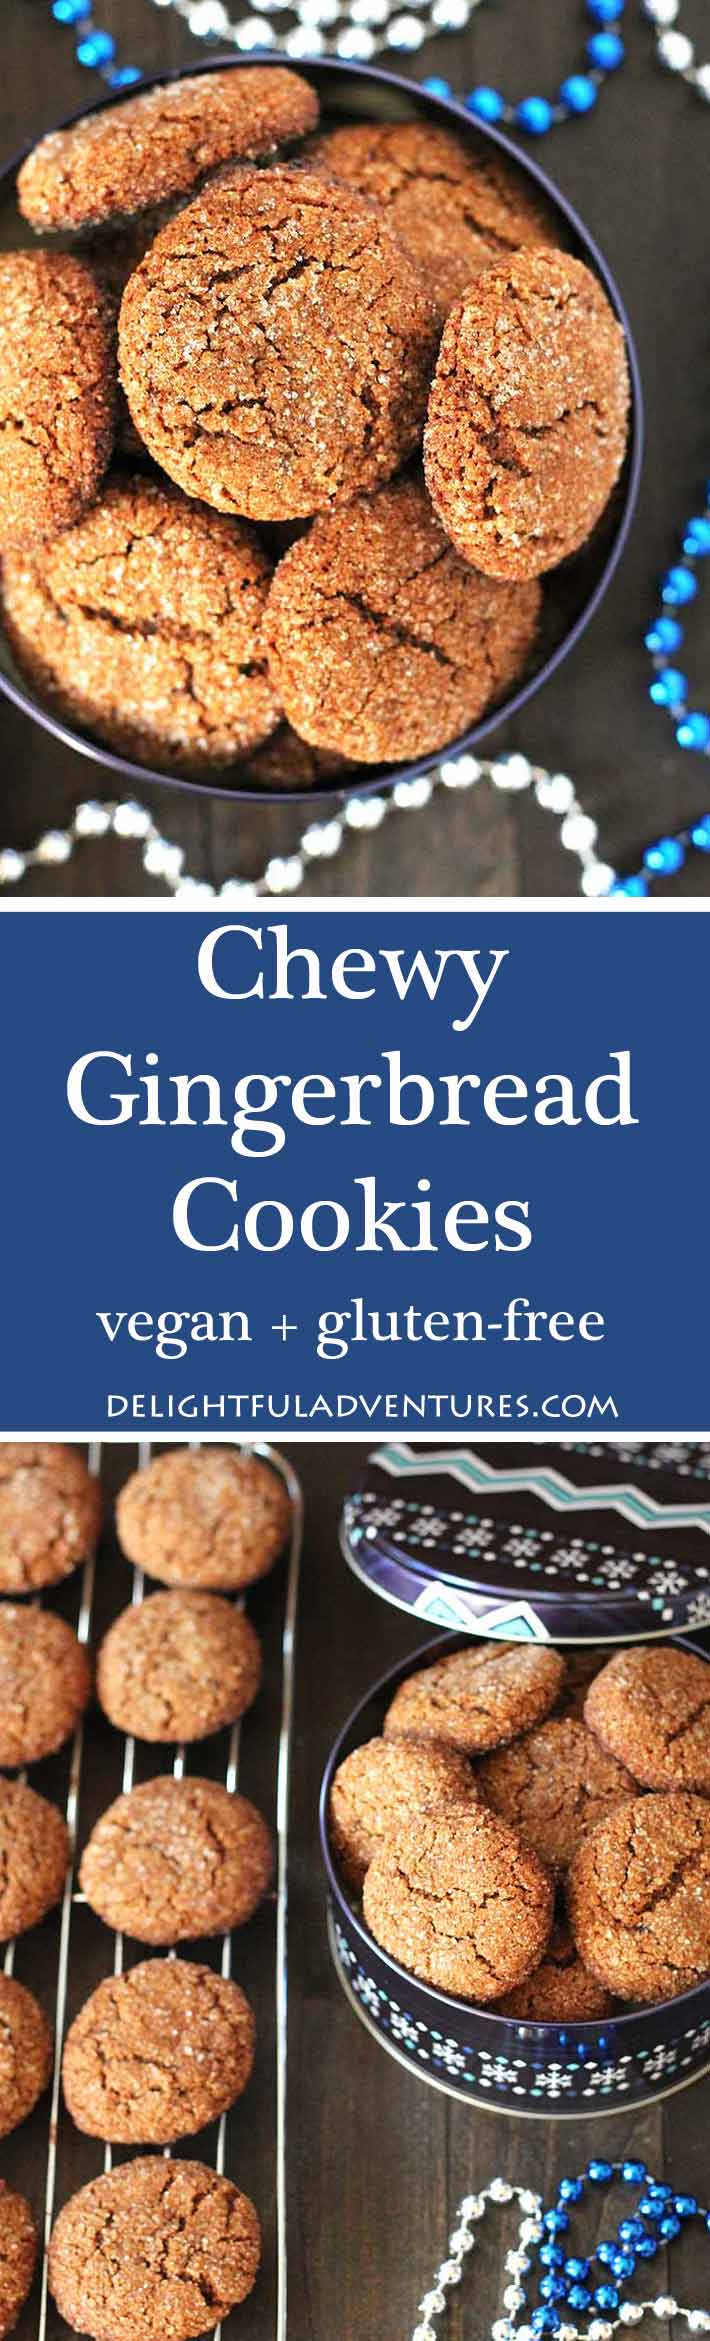 Chewy, perfectly spiced, these vegan gluten free gingerbread cookies will make a nice addition to your Christmas baking list and become a new favourite!